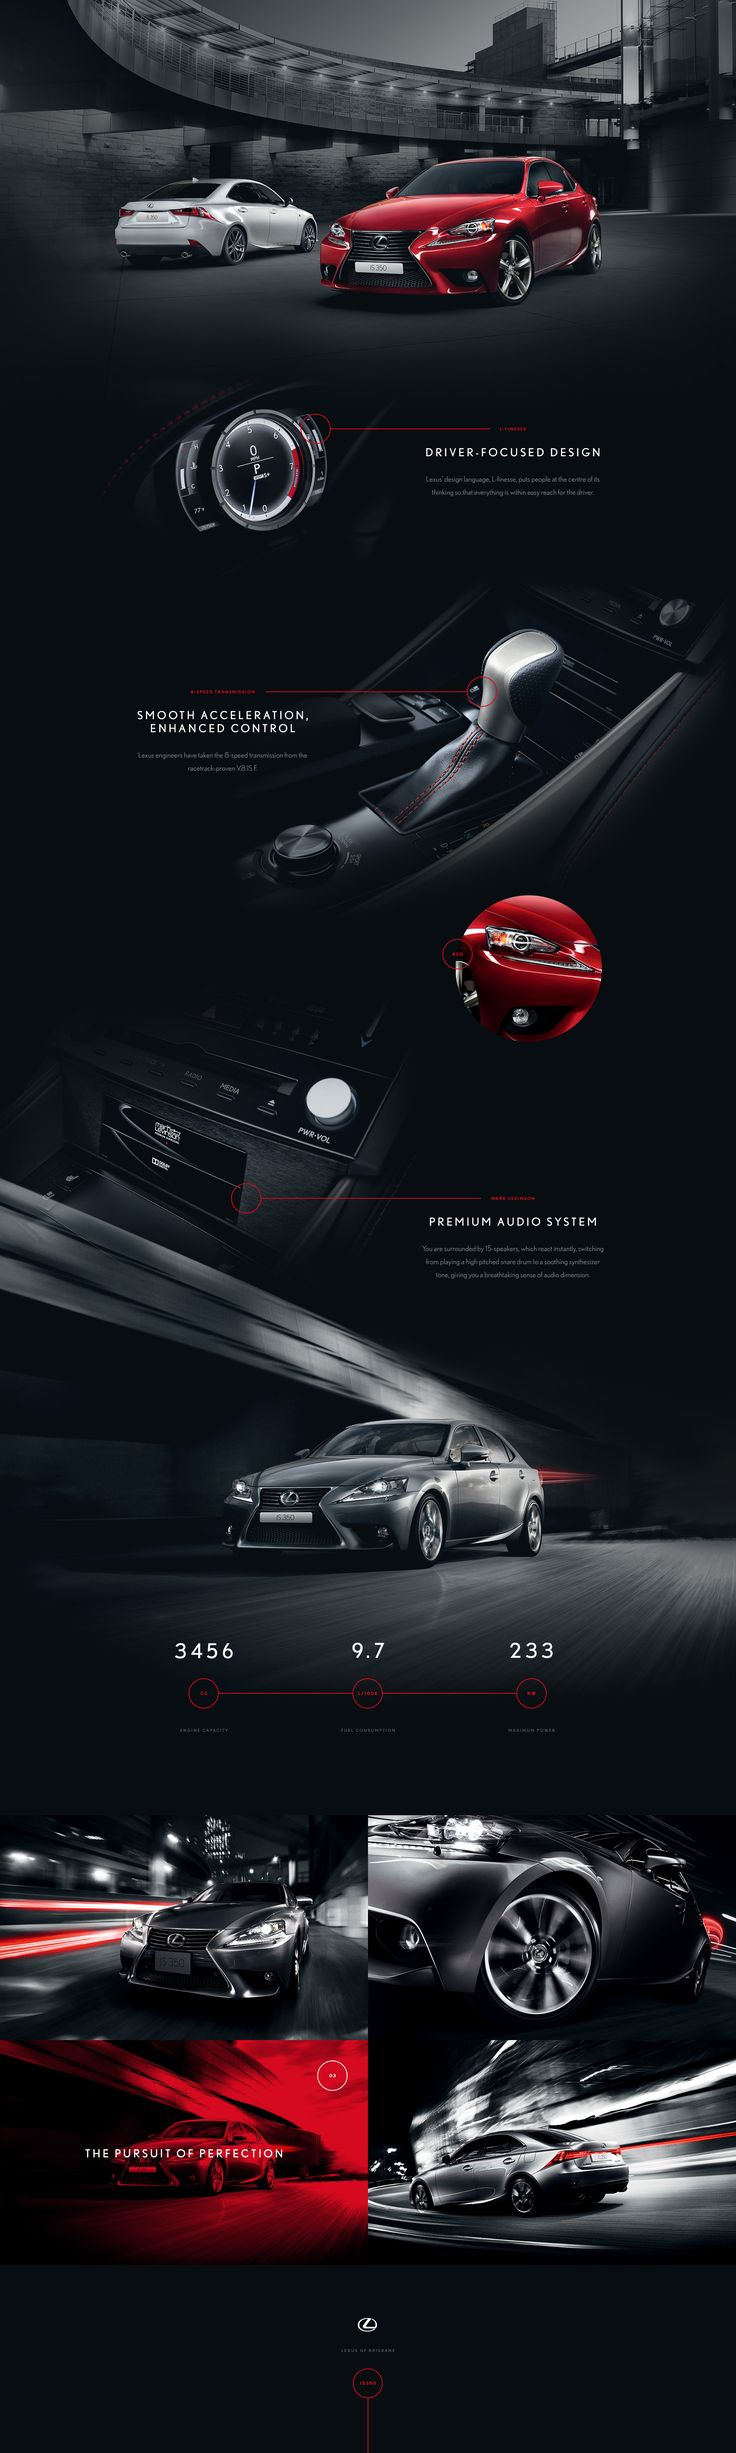 Lexus of Brisbane | Twofold Graphic & Web Design